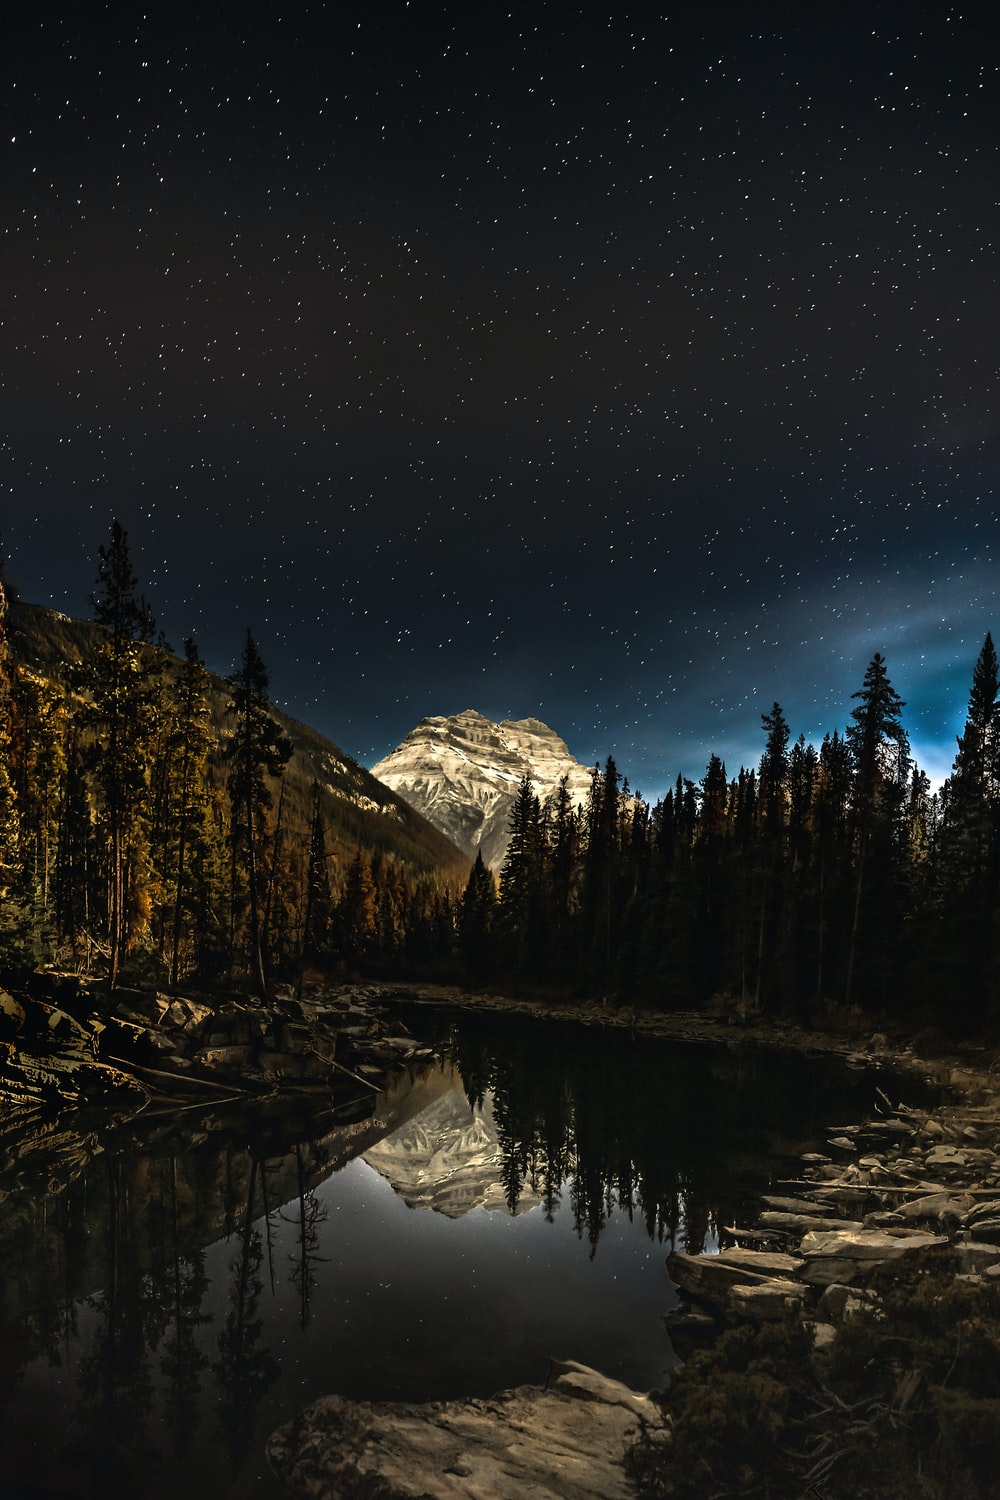 green pine trees near snow covered mountain during night time